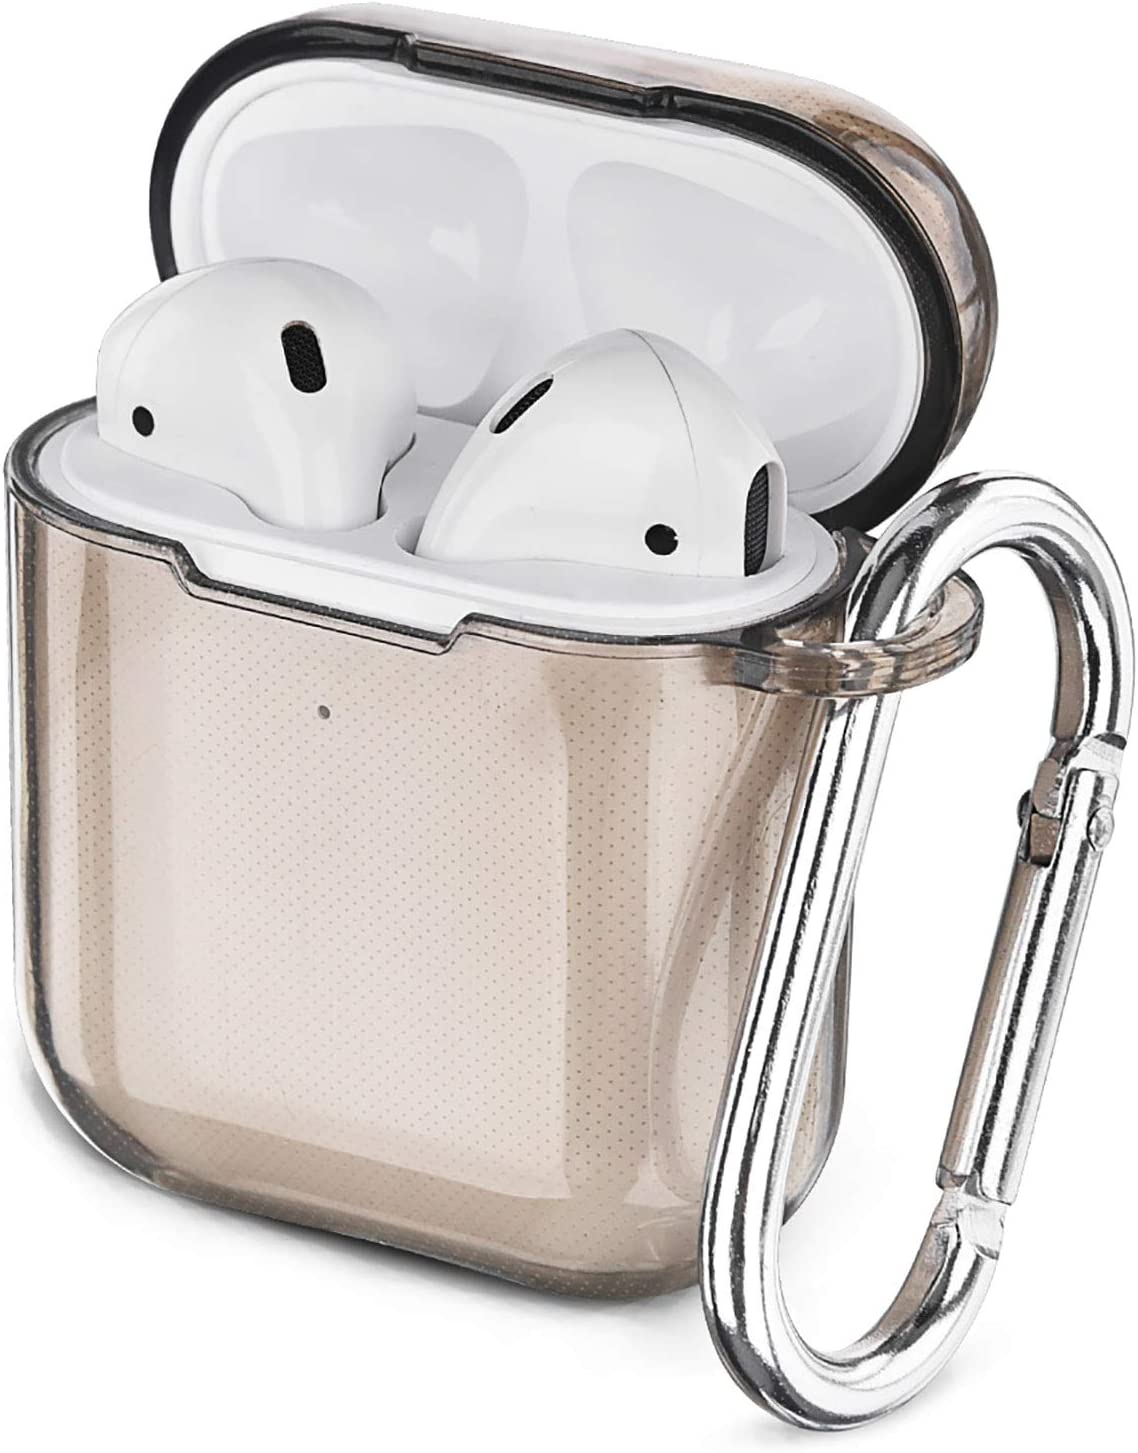 AIRSPO Airpods Case Cover, Clear Soft TPU Protective Cover Compatible with Apple AirPods 1/2 Wireless Charging Case with Keychain (Clear Black)